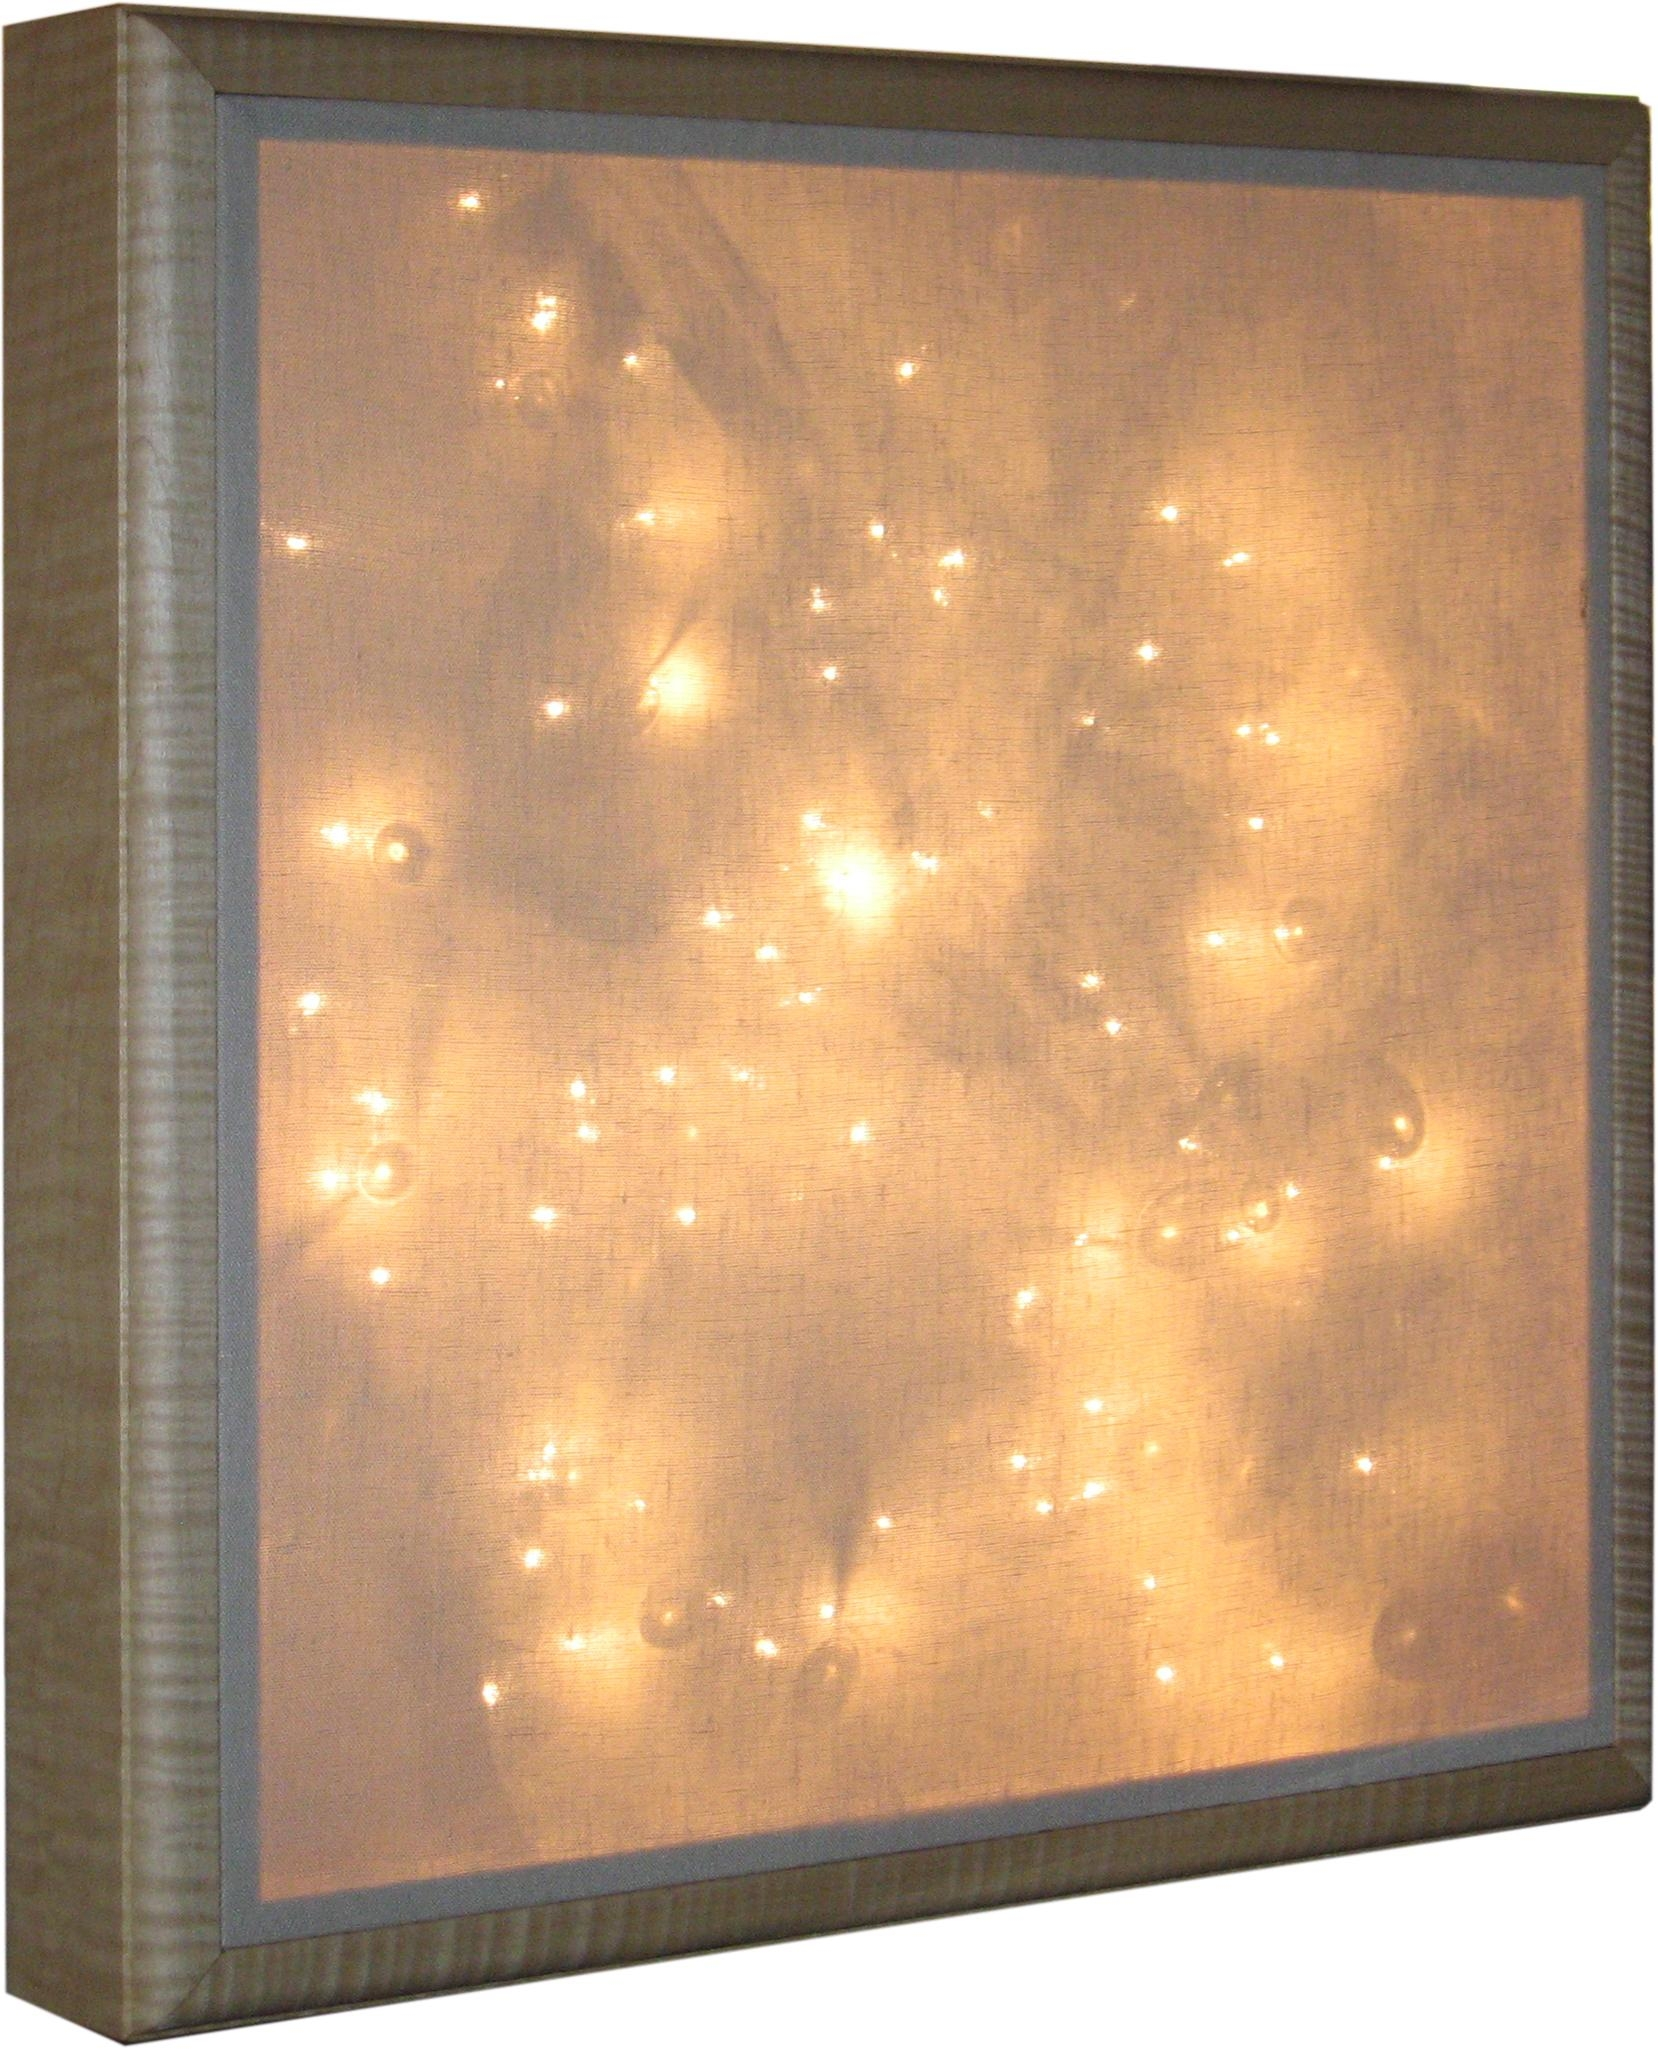 Light Squared–Illuminated Wall Art Inside Wall Light Box Art (Image 6 of 20)